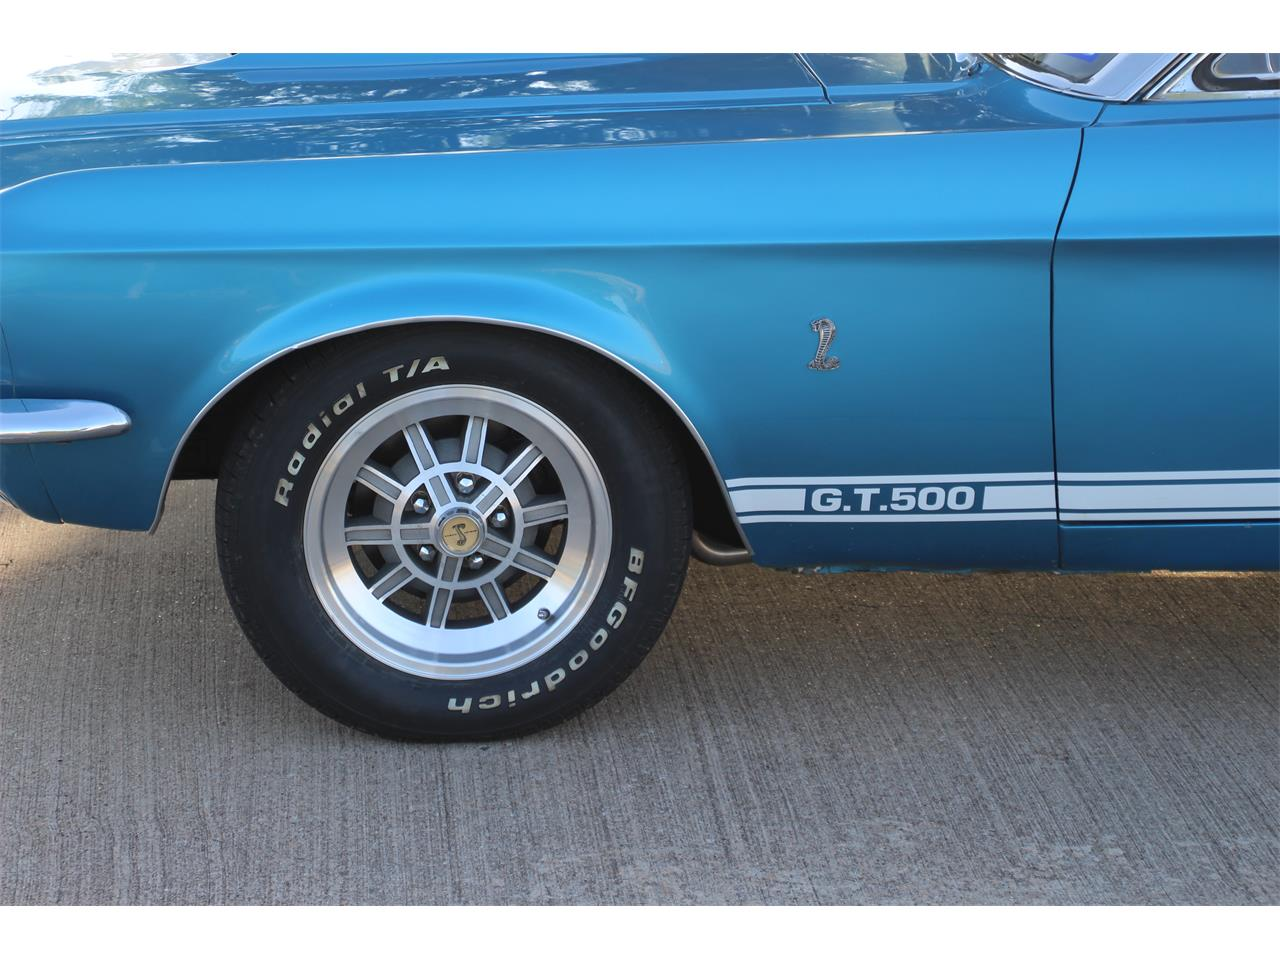 Large Picture of 1967 Ford Mustang Shelby GT500  located in Richardson Texas - $41,000.00 Offered by a Private Seller - NP08